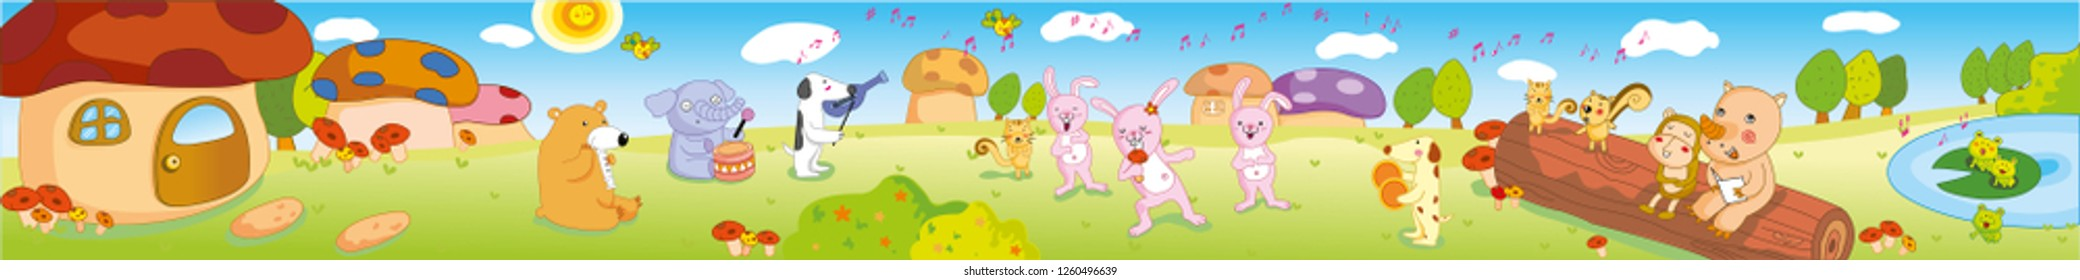 Cute animals, play background